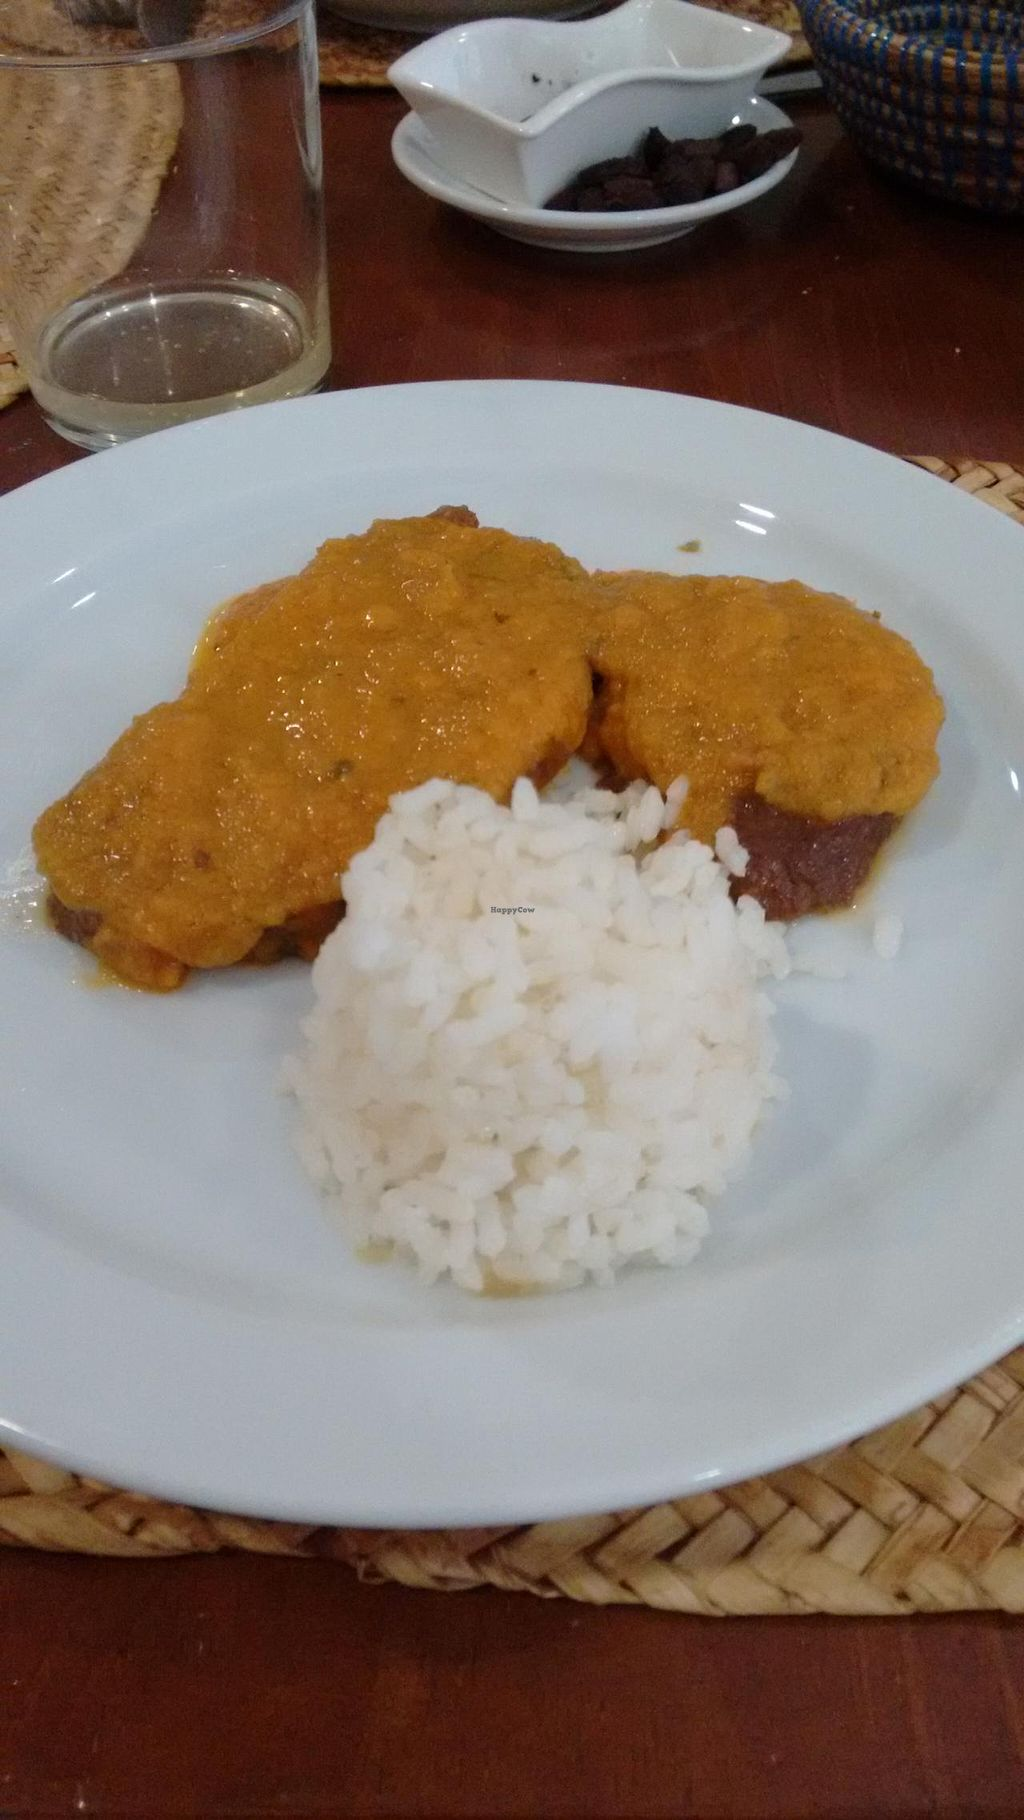 """Photo of Es Ginebro  by <a href=""""/members/profile/craigmc"""">craigmc</a> <br/>Schnitzel with tomato with a gazpacho style sauce <br/> May 31, 2015  - <a href='/contact/abuse/image/24440/104281'>Report</a>"""